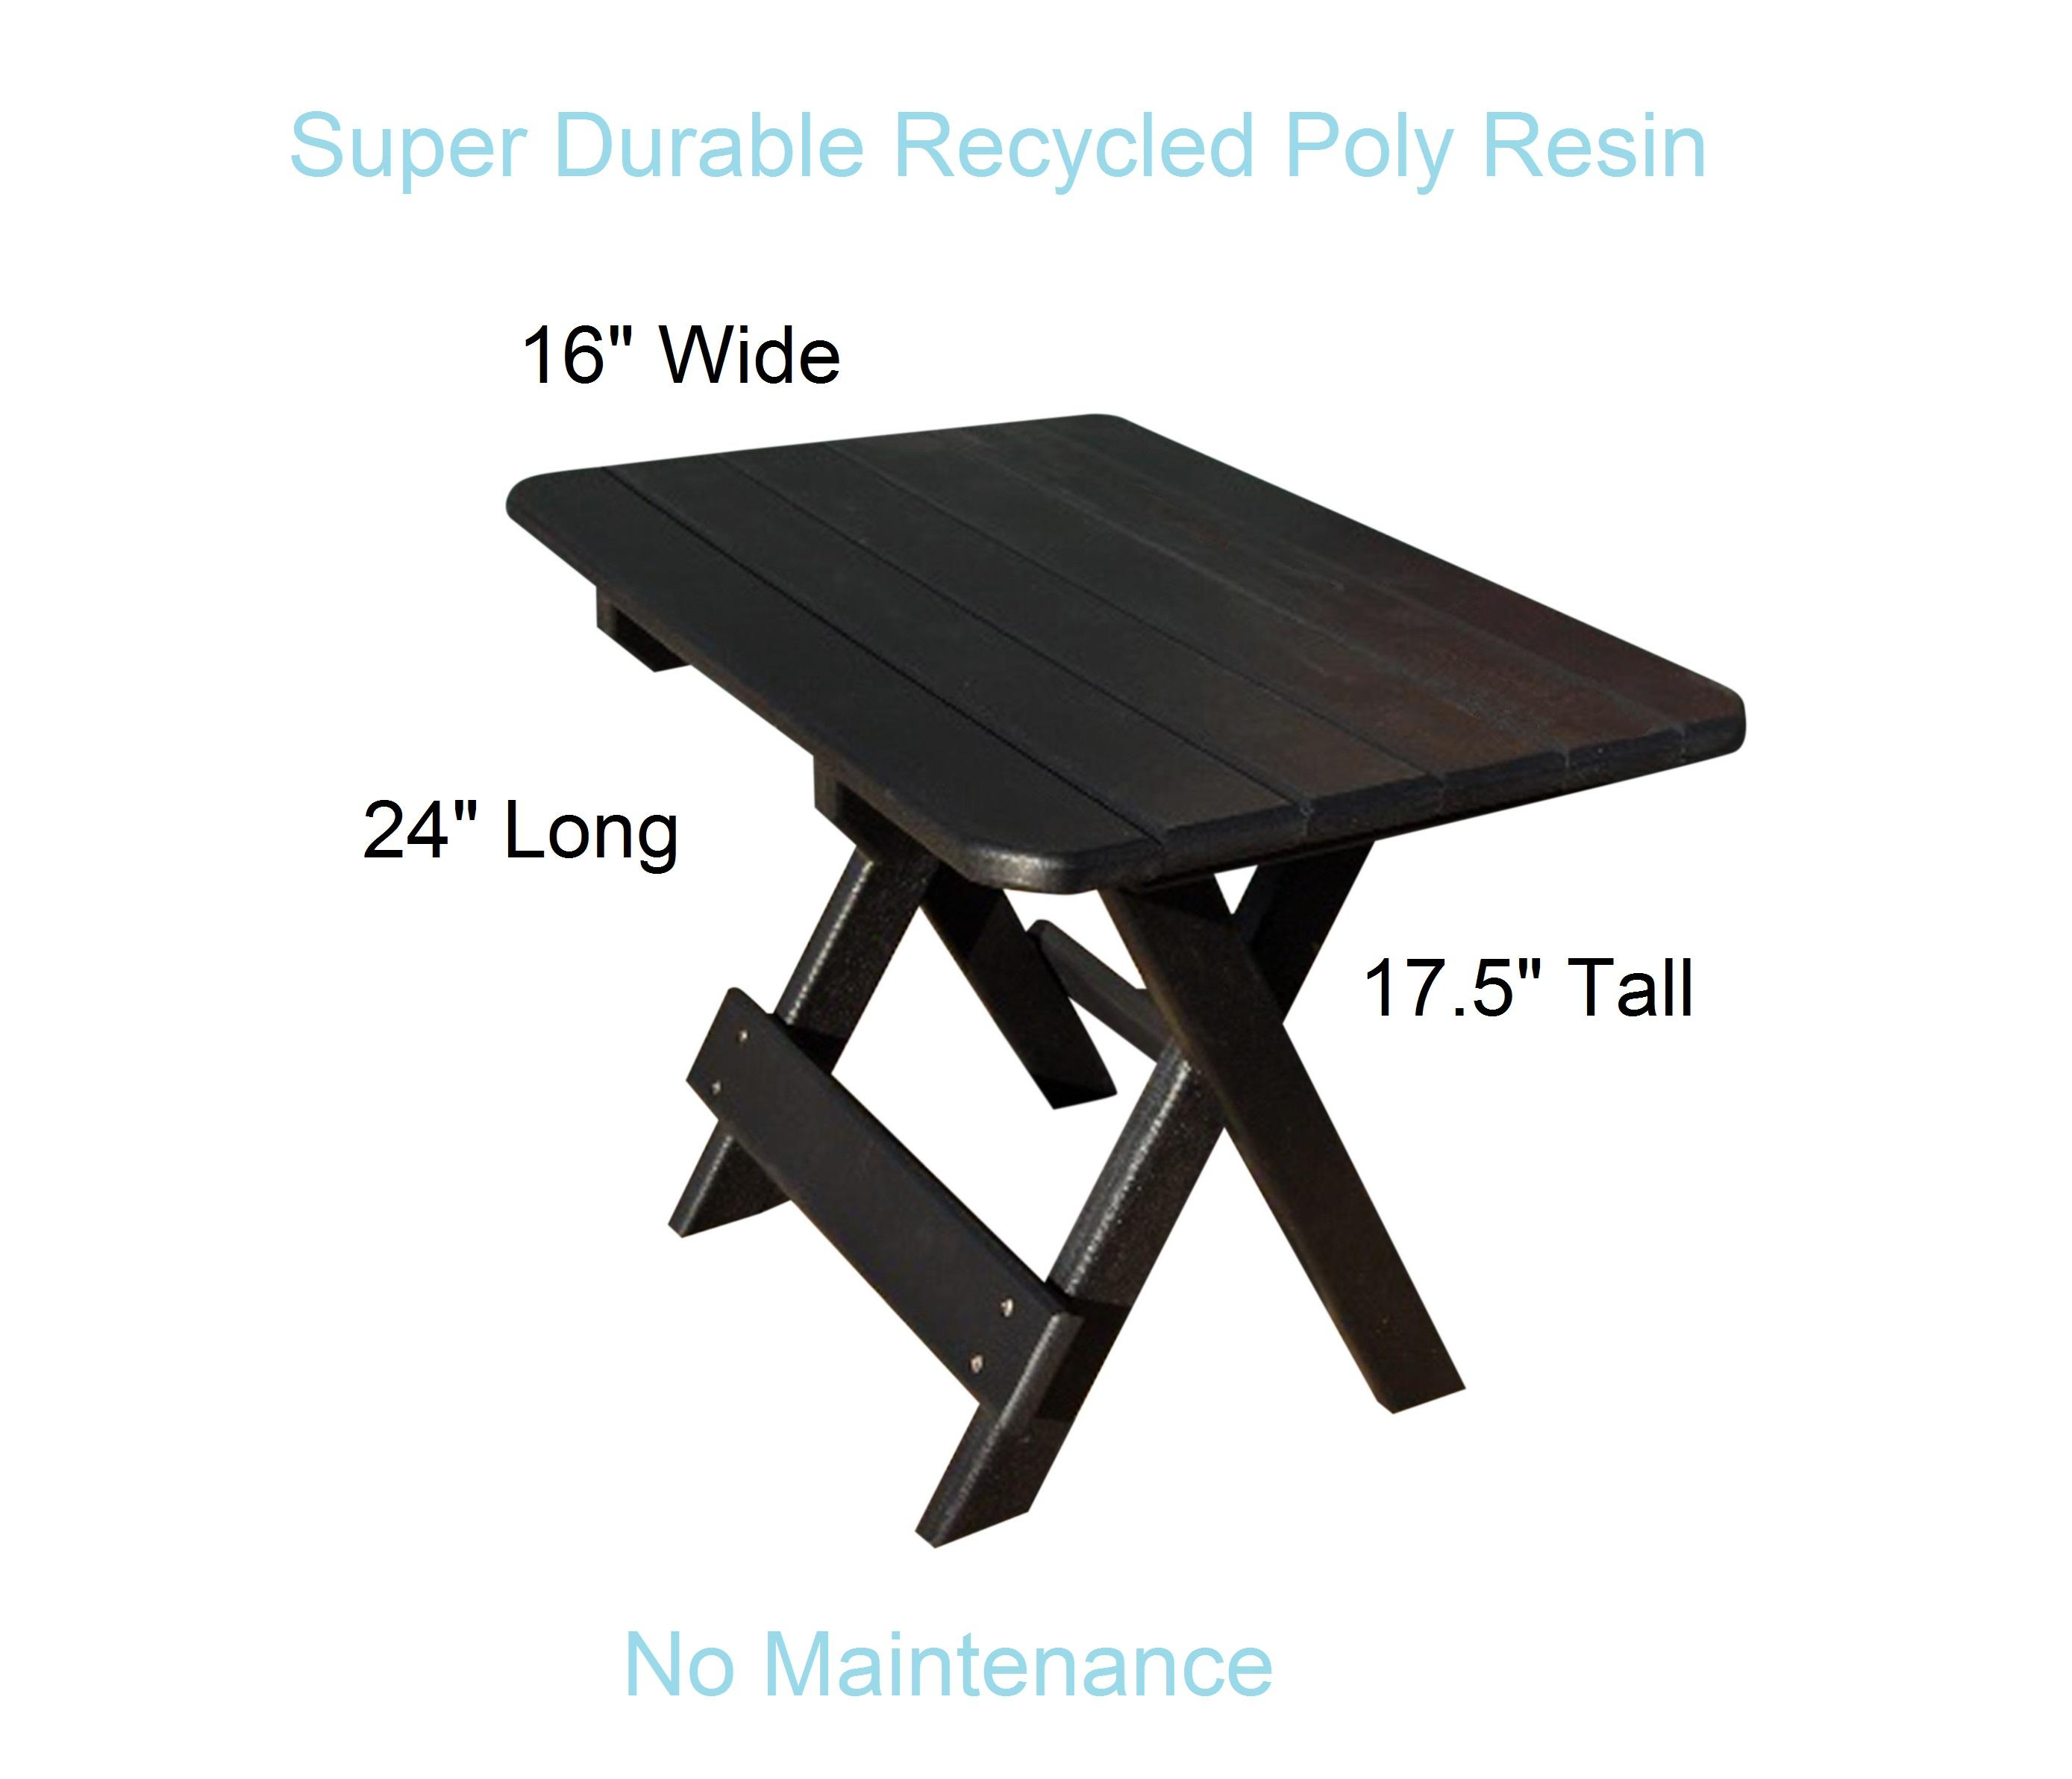 phat tommy recycled poly resin folding side table outdoor view larger turquoise furniture floor threshold white rectangle tablecloth bunnings chairs toronto ballard designs chair